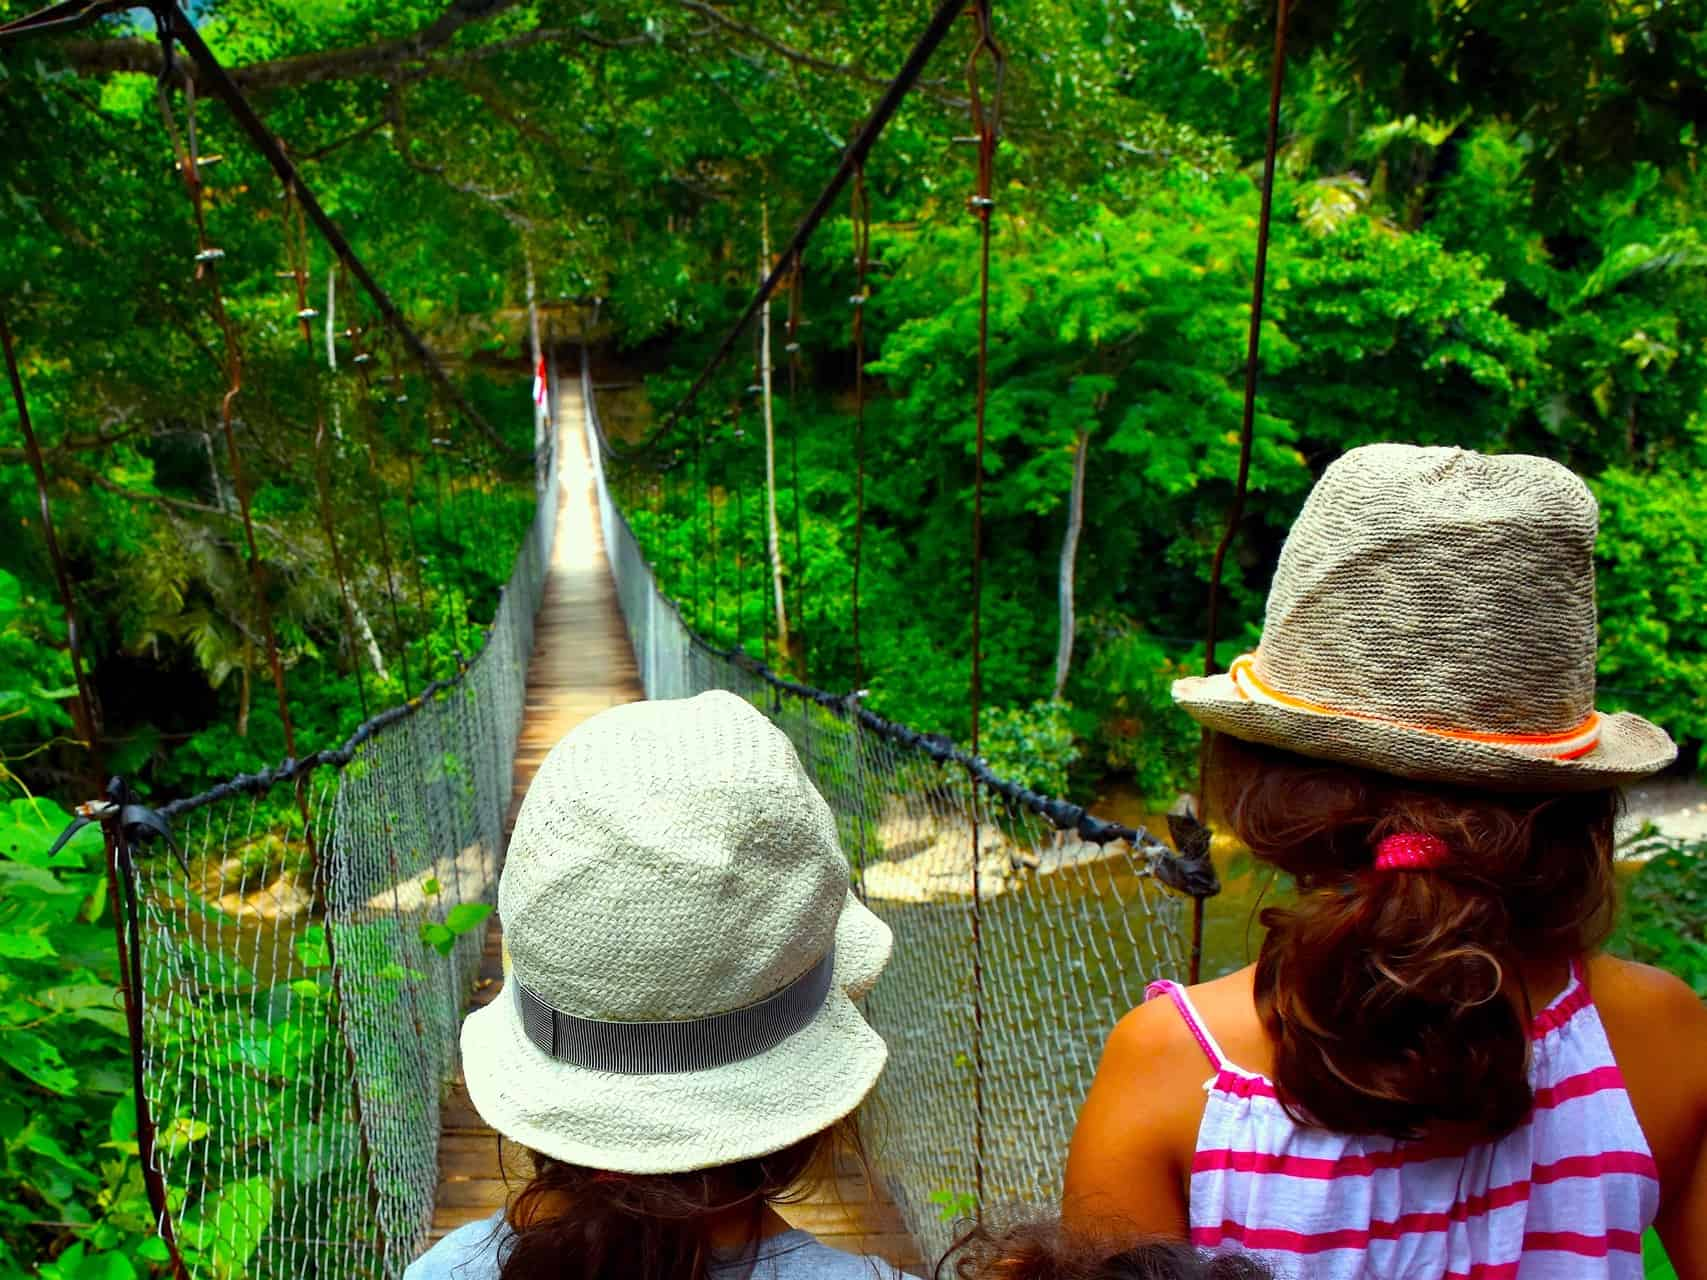 BUKIT LAWANG JUNGLE TREKKING FOR KIDS - SUMATRA HIGHLIGHT - SUMATRA ECO TOURS BY SUMATRA ECOTRAVEL